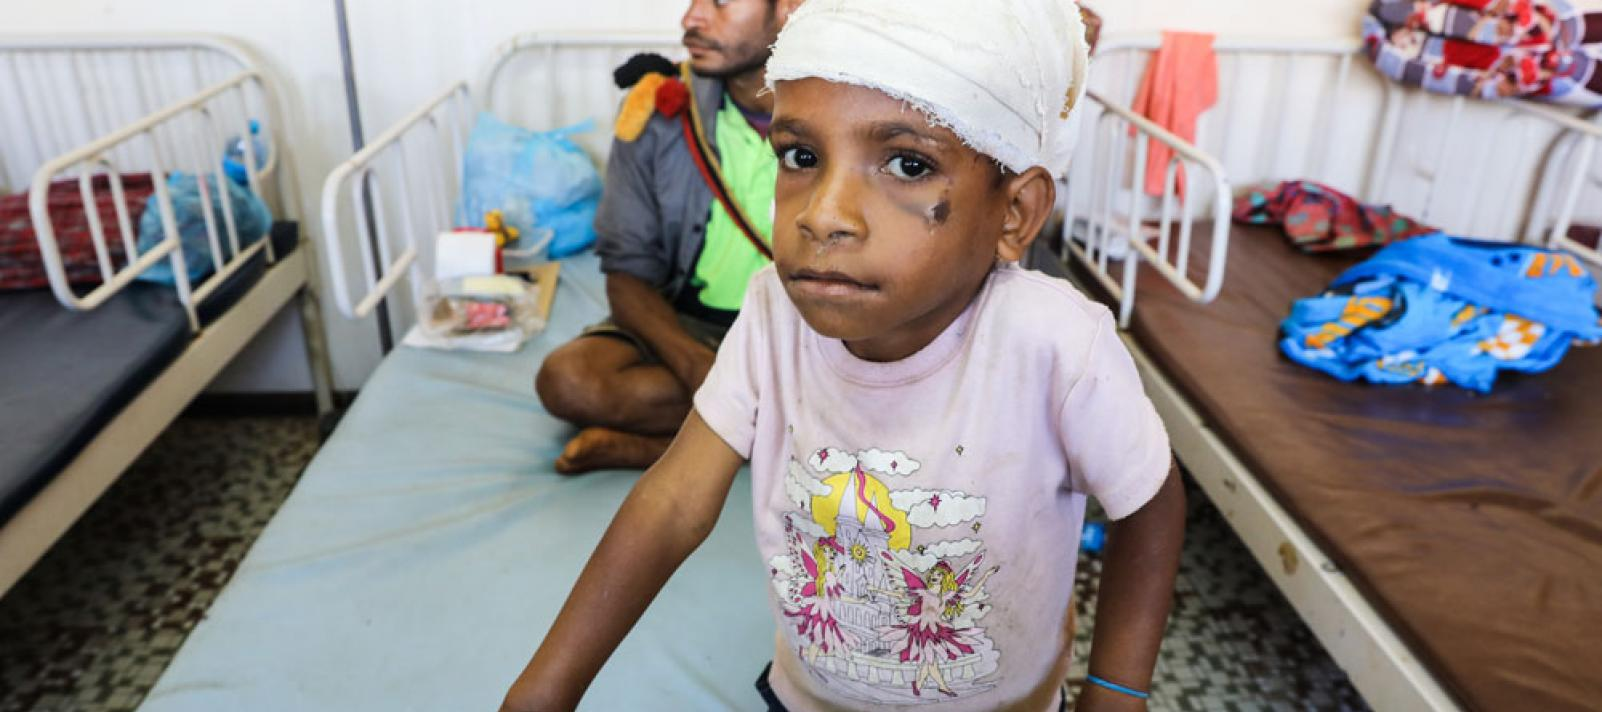 Douglas Jacob (5 years old) was hit in the head by falling rocks during the landslides triggered by the earthquakes